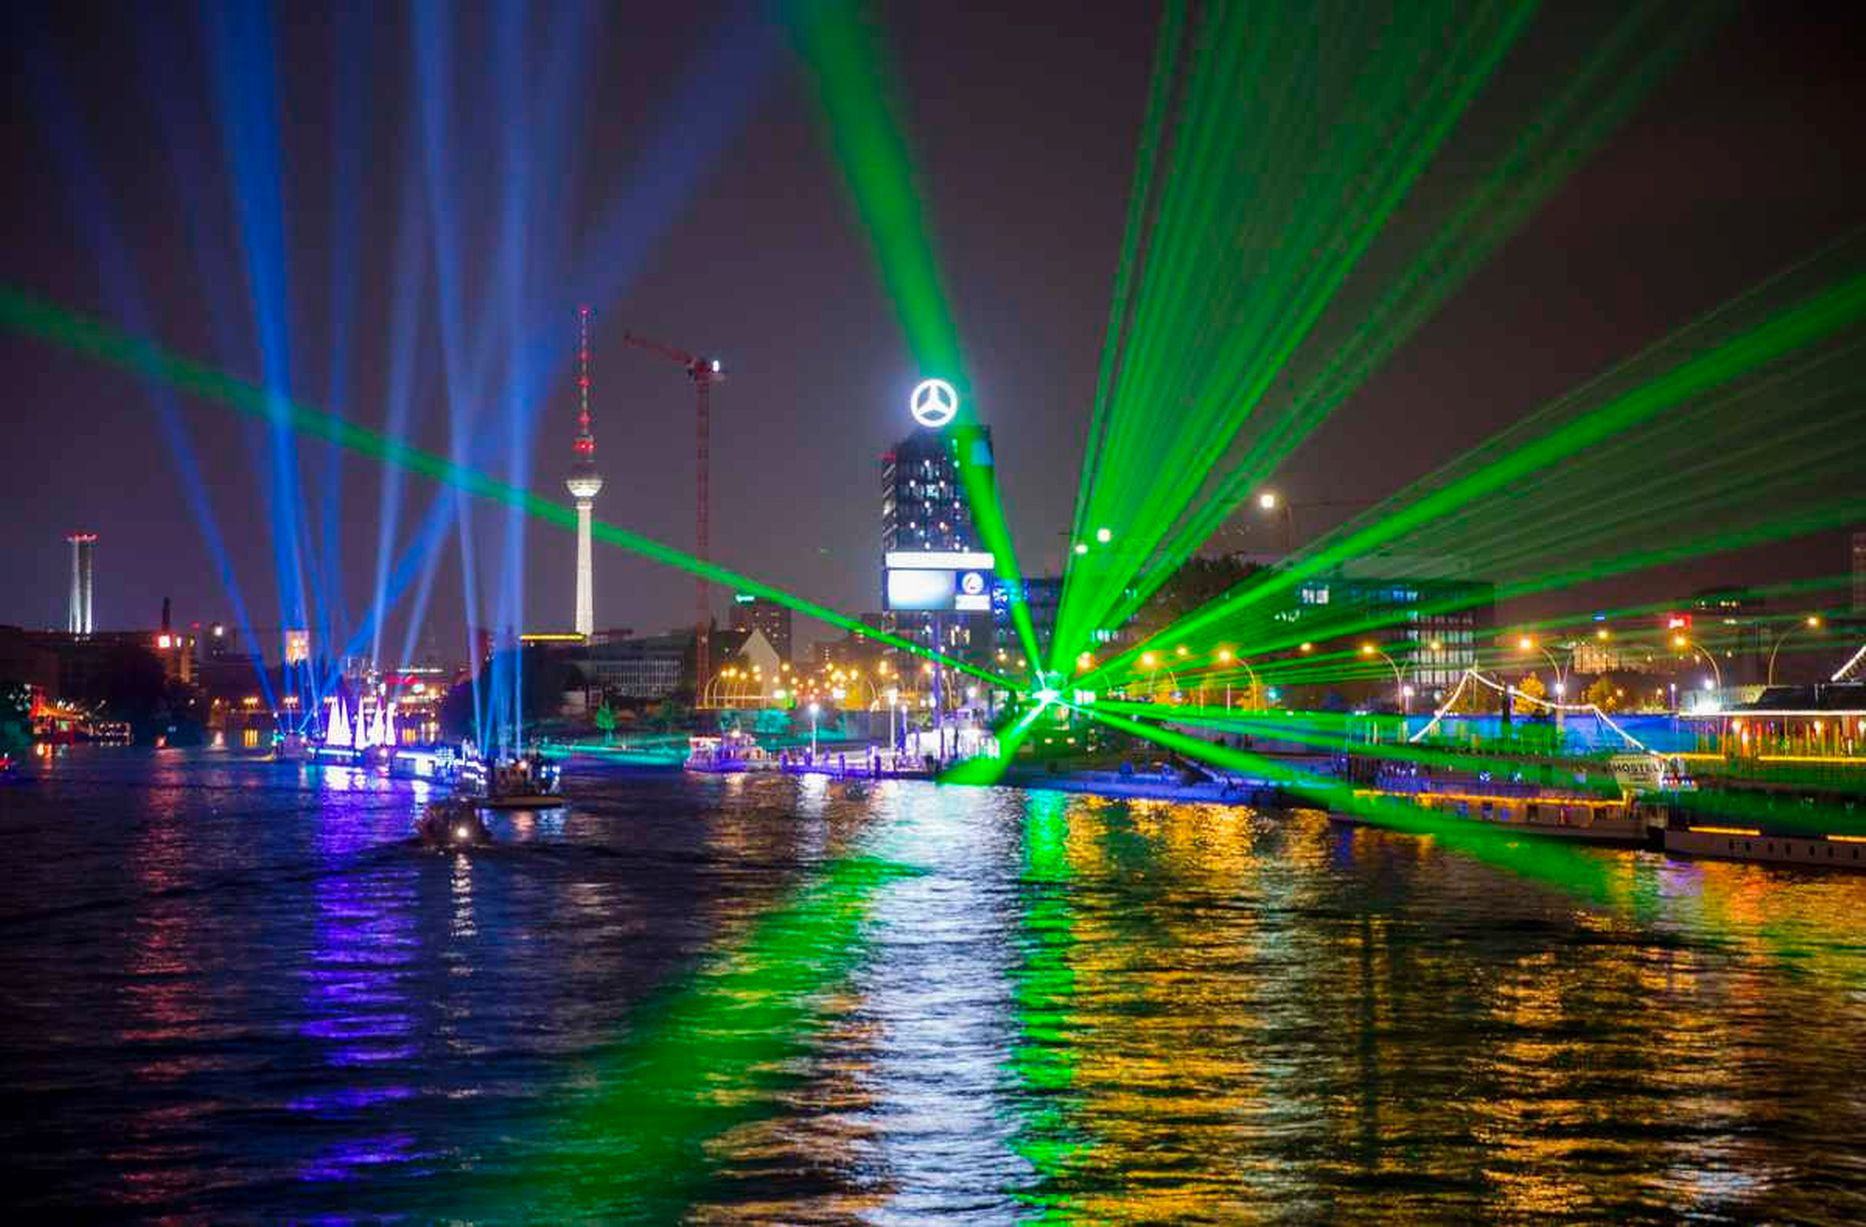 The Berlin Festival of Lights